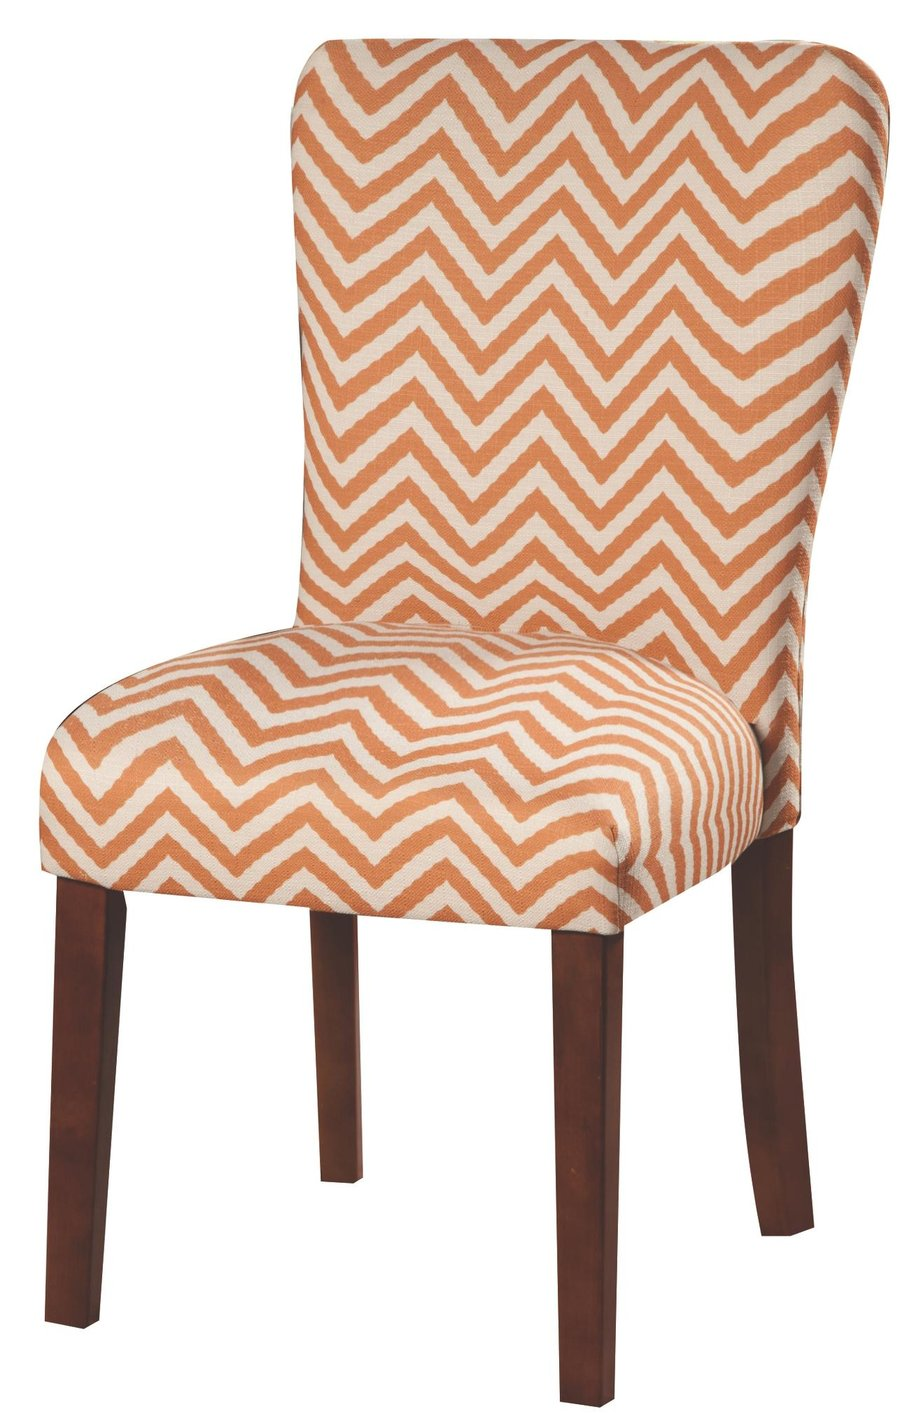 Orange Fabric Dining Chair Steal A Sofa Furniture Outlet